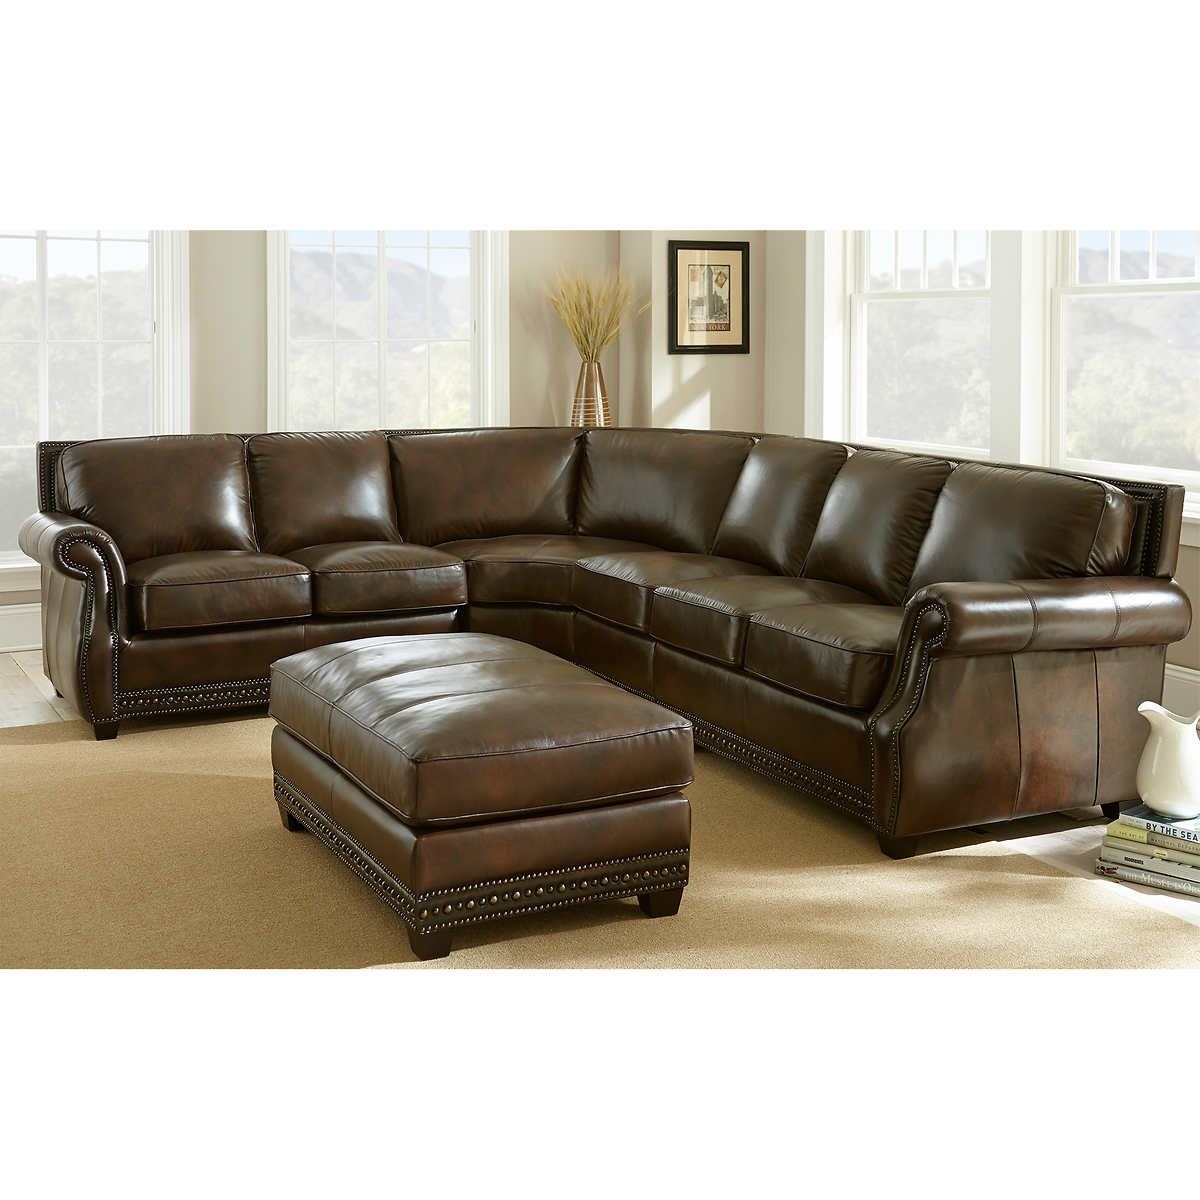 Awesome Leather Couch Sectional , New Leather Couch Sectional 64 Intended For Greenville Sc Sectional Sofas (Image 1 of 10)